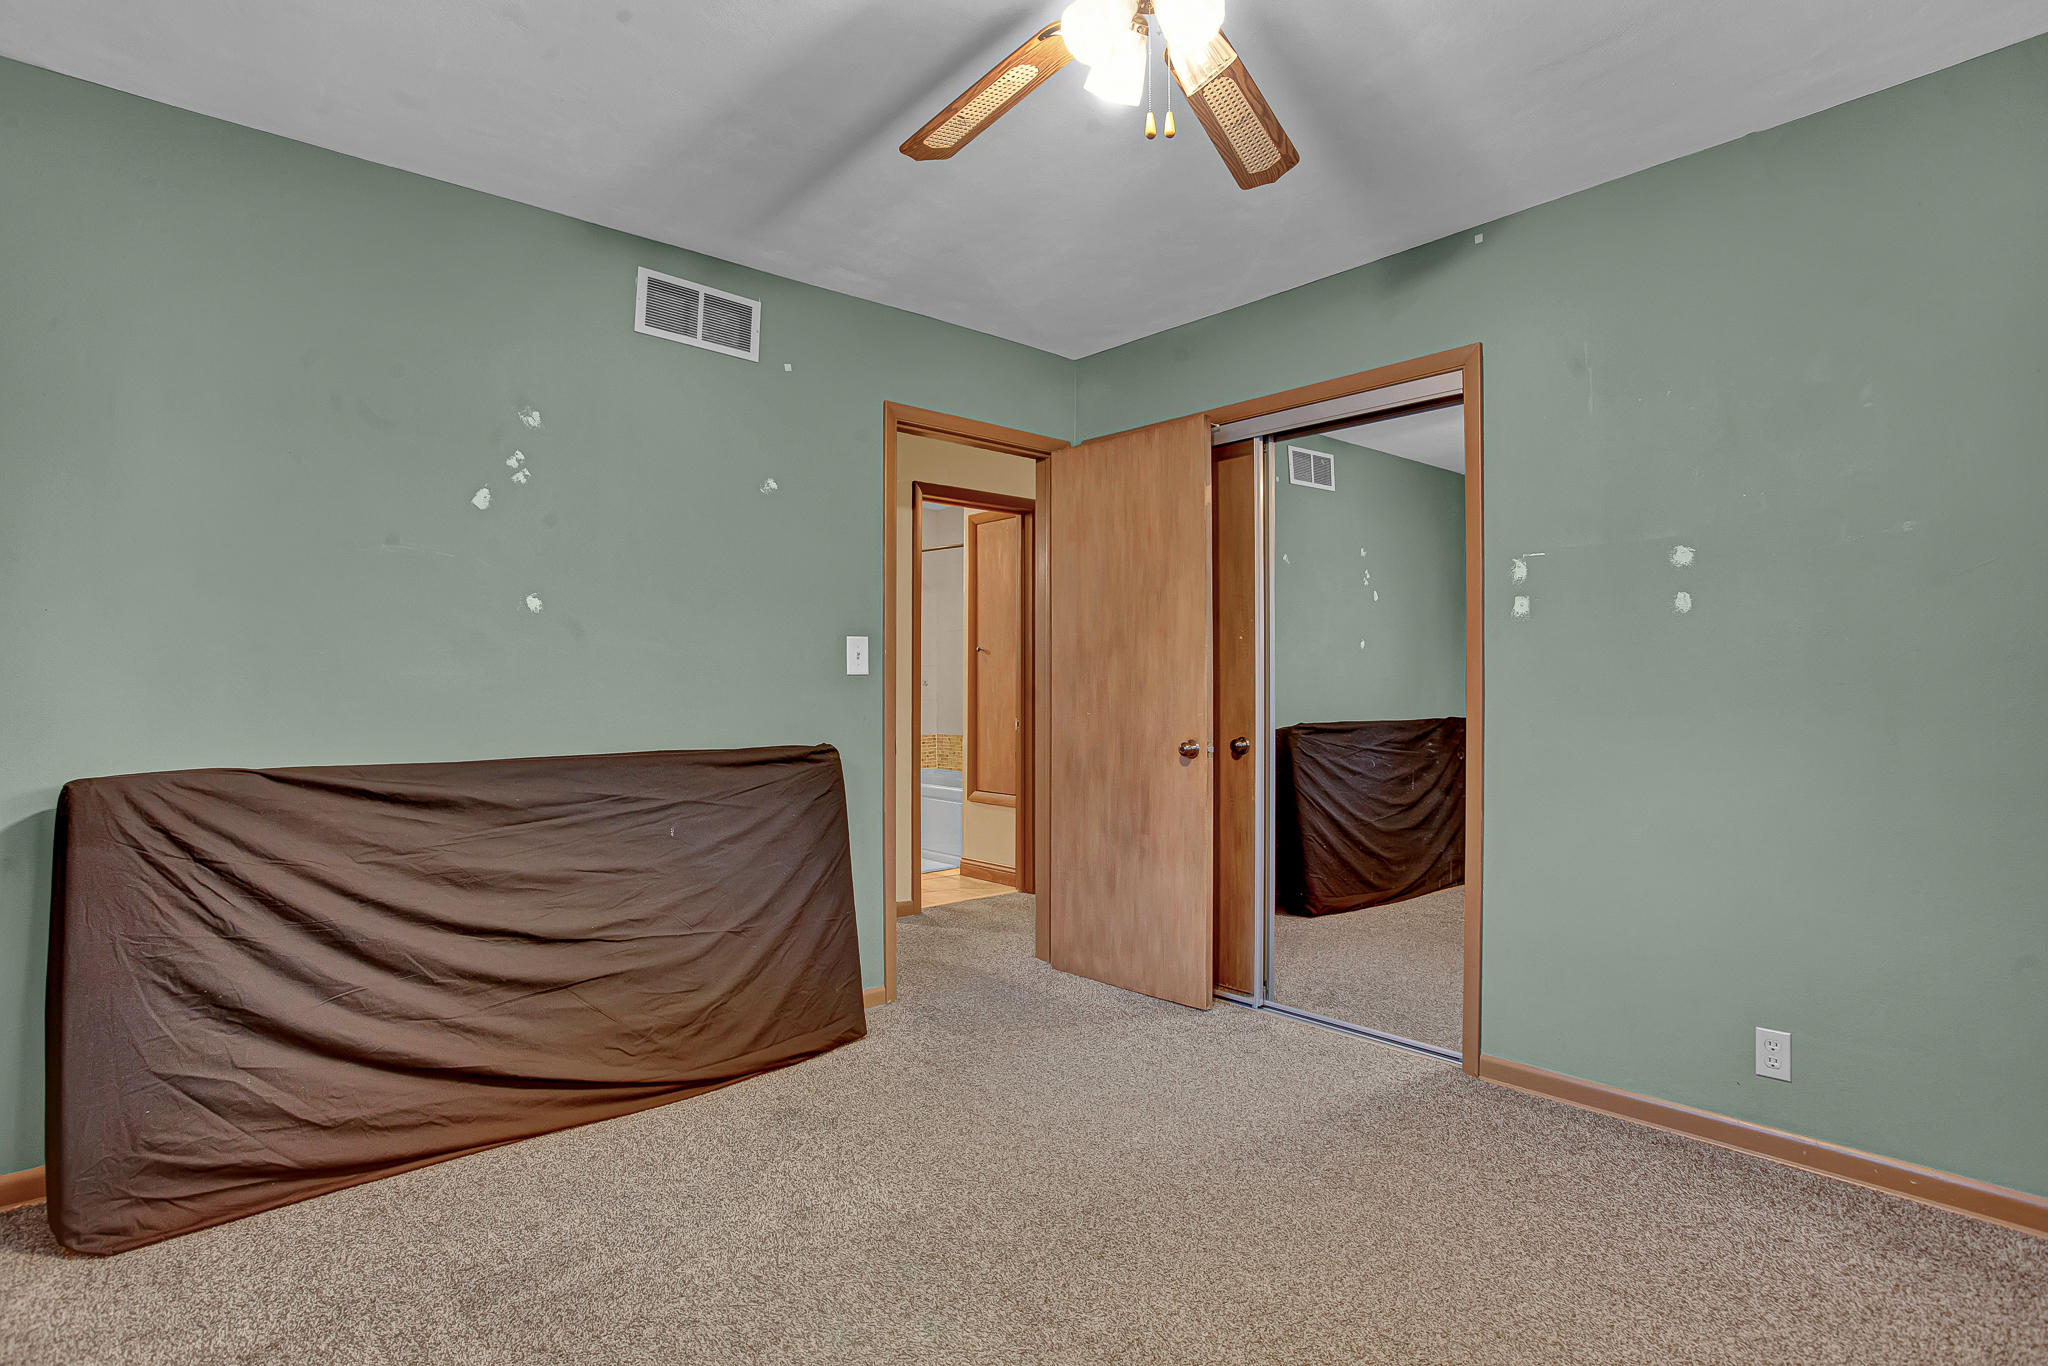 7681 44th St, Brown Deer, Wisconsin 53223, 3 Bedrooms Bedrooms, 6 Rooms Rooms,1 BathroomBathrooms,Single-family,For Sale,44th St,1723083